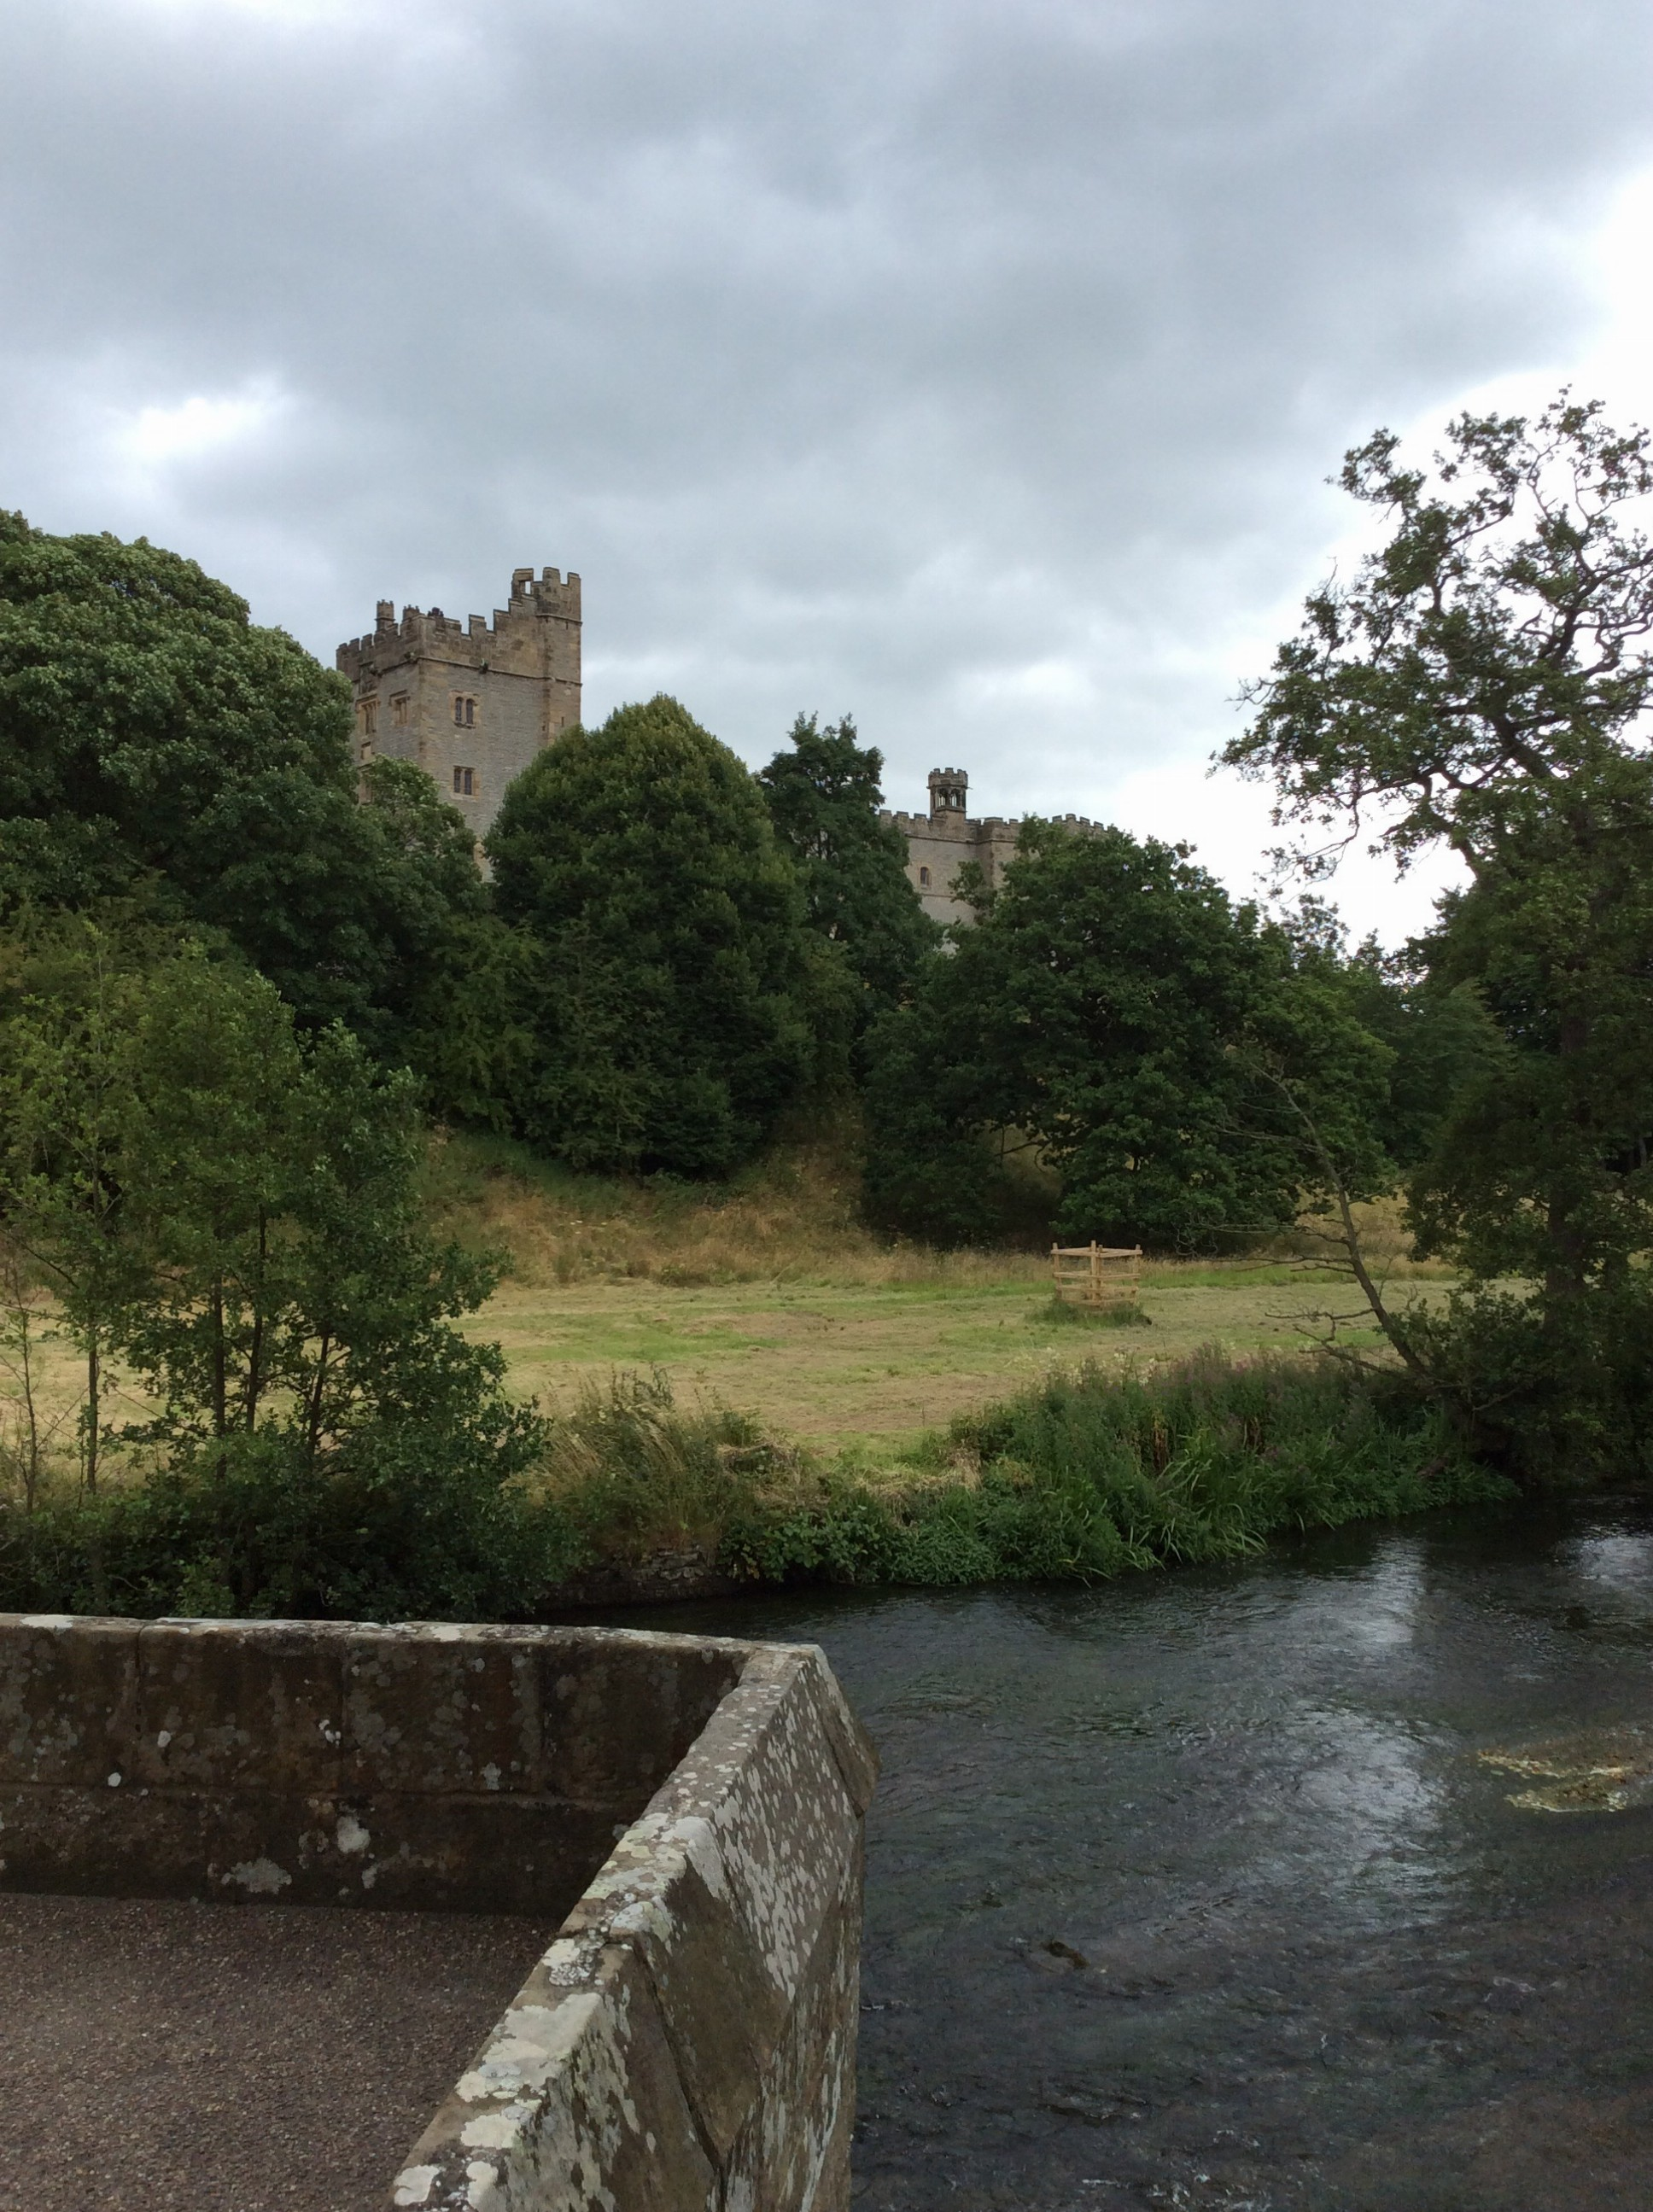 Looking at Haddon from the River Wye.